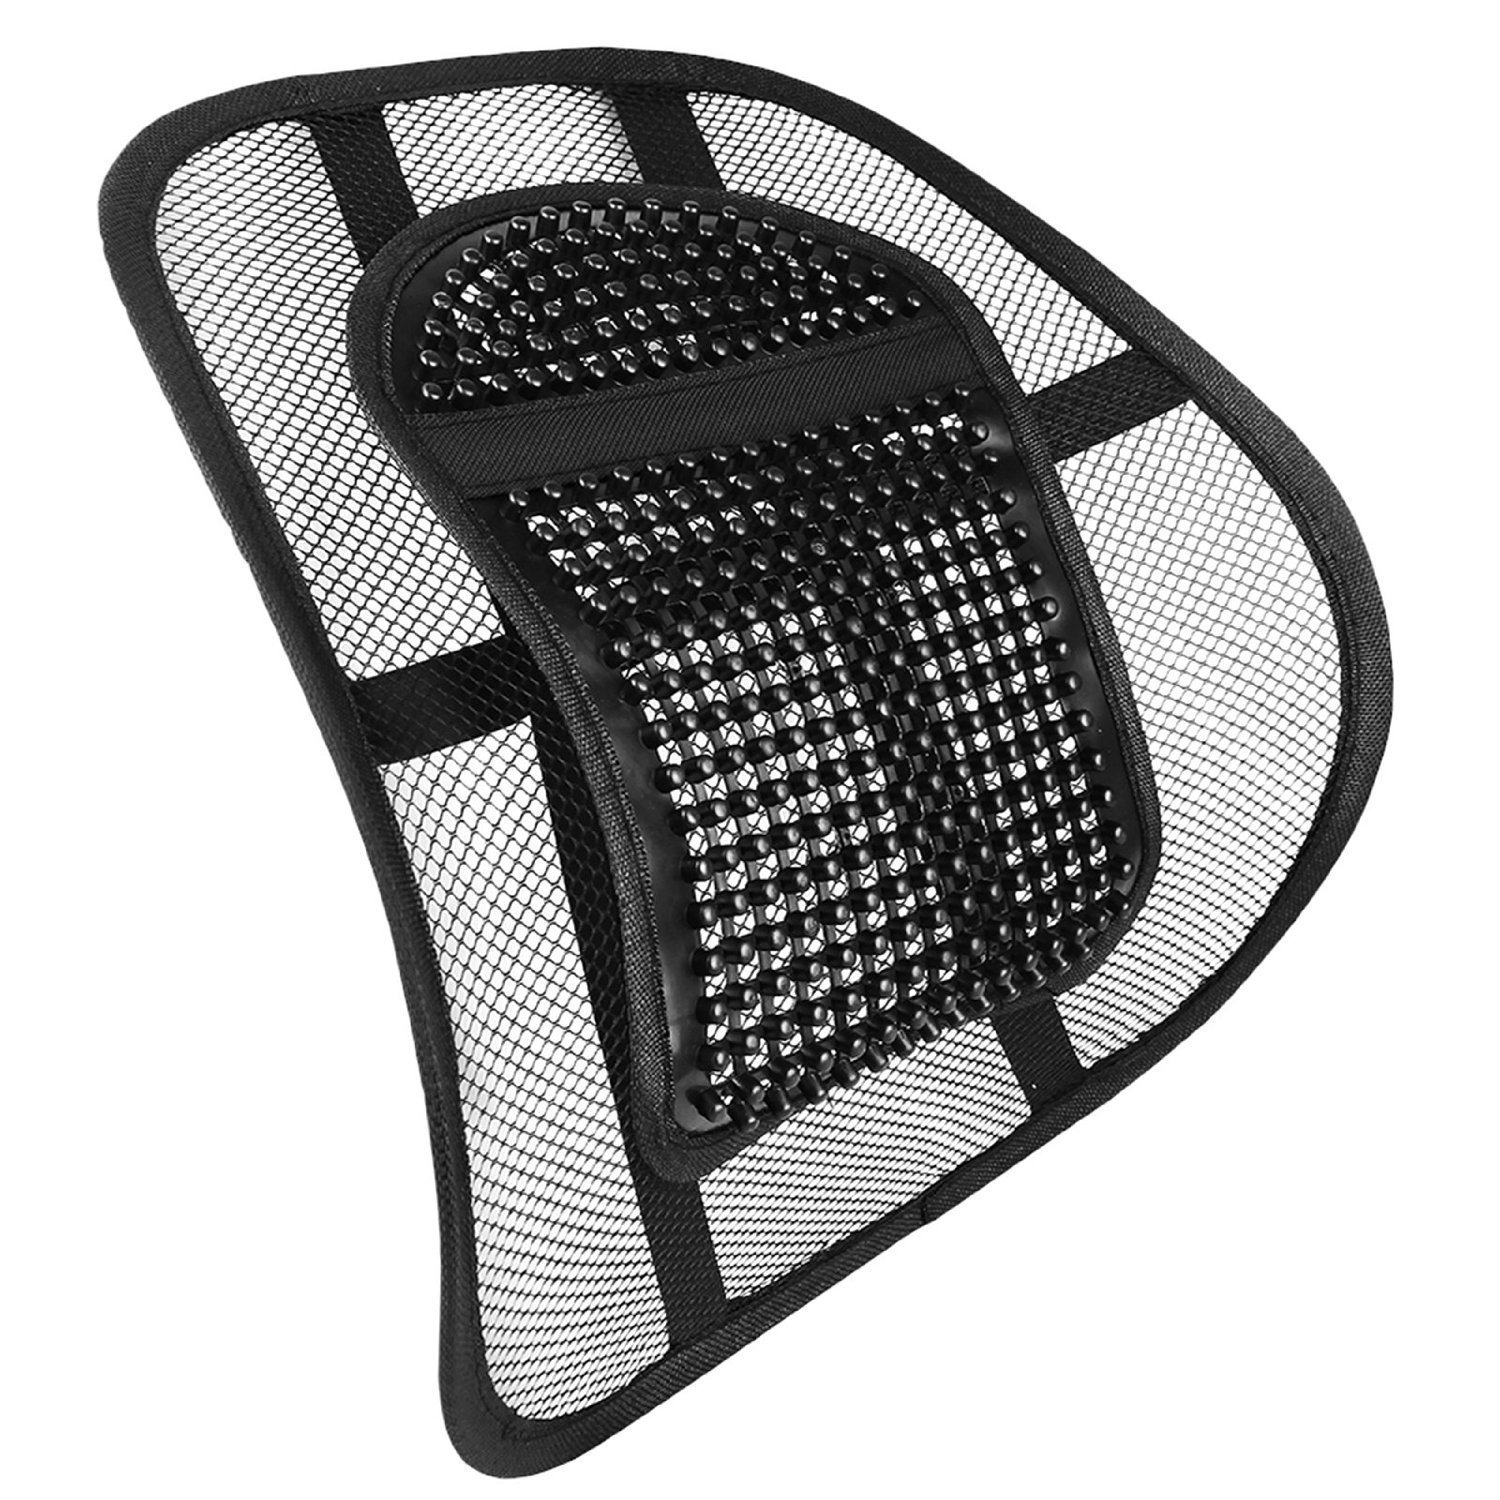 Chair Back Support System Sit Right with Elasticated Positioning Strap and Mesh Lumbar Grill Air Flow High Quality Lumbar Support Cushion for Car Seat or Chair Back Rest RRP £19.99 DNY®